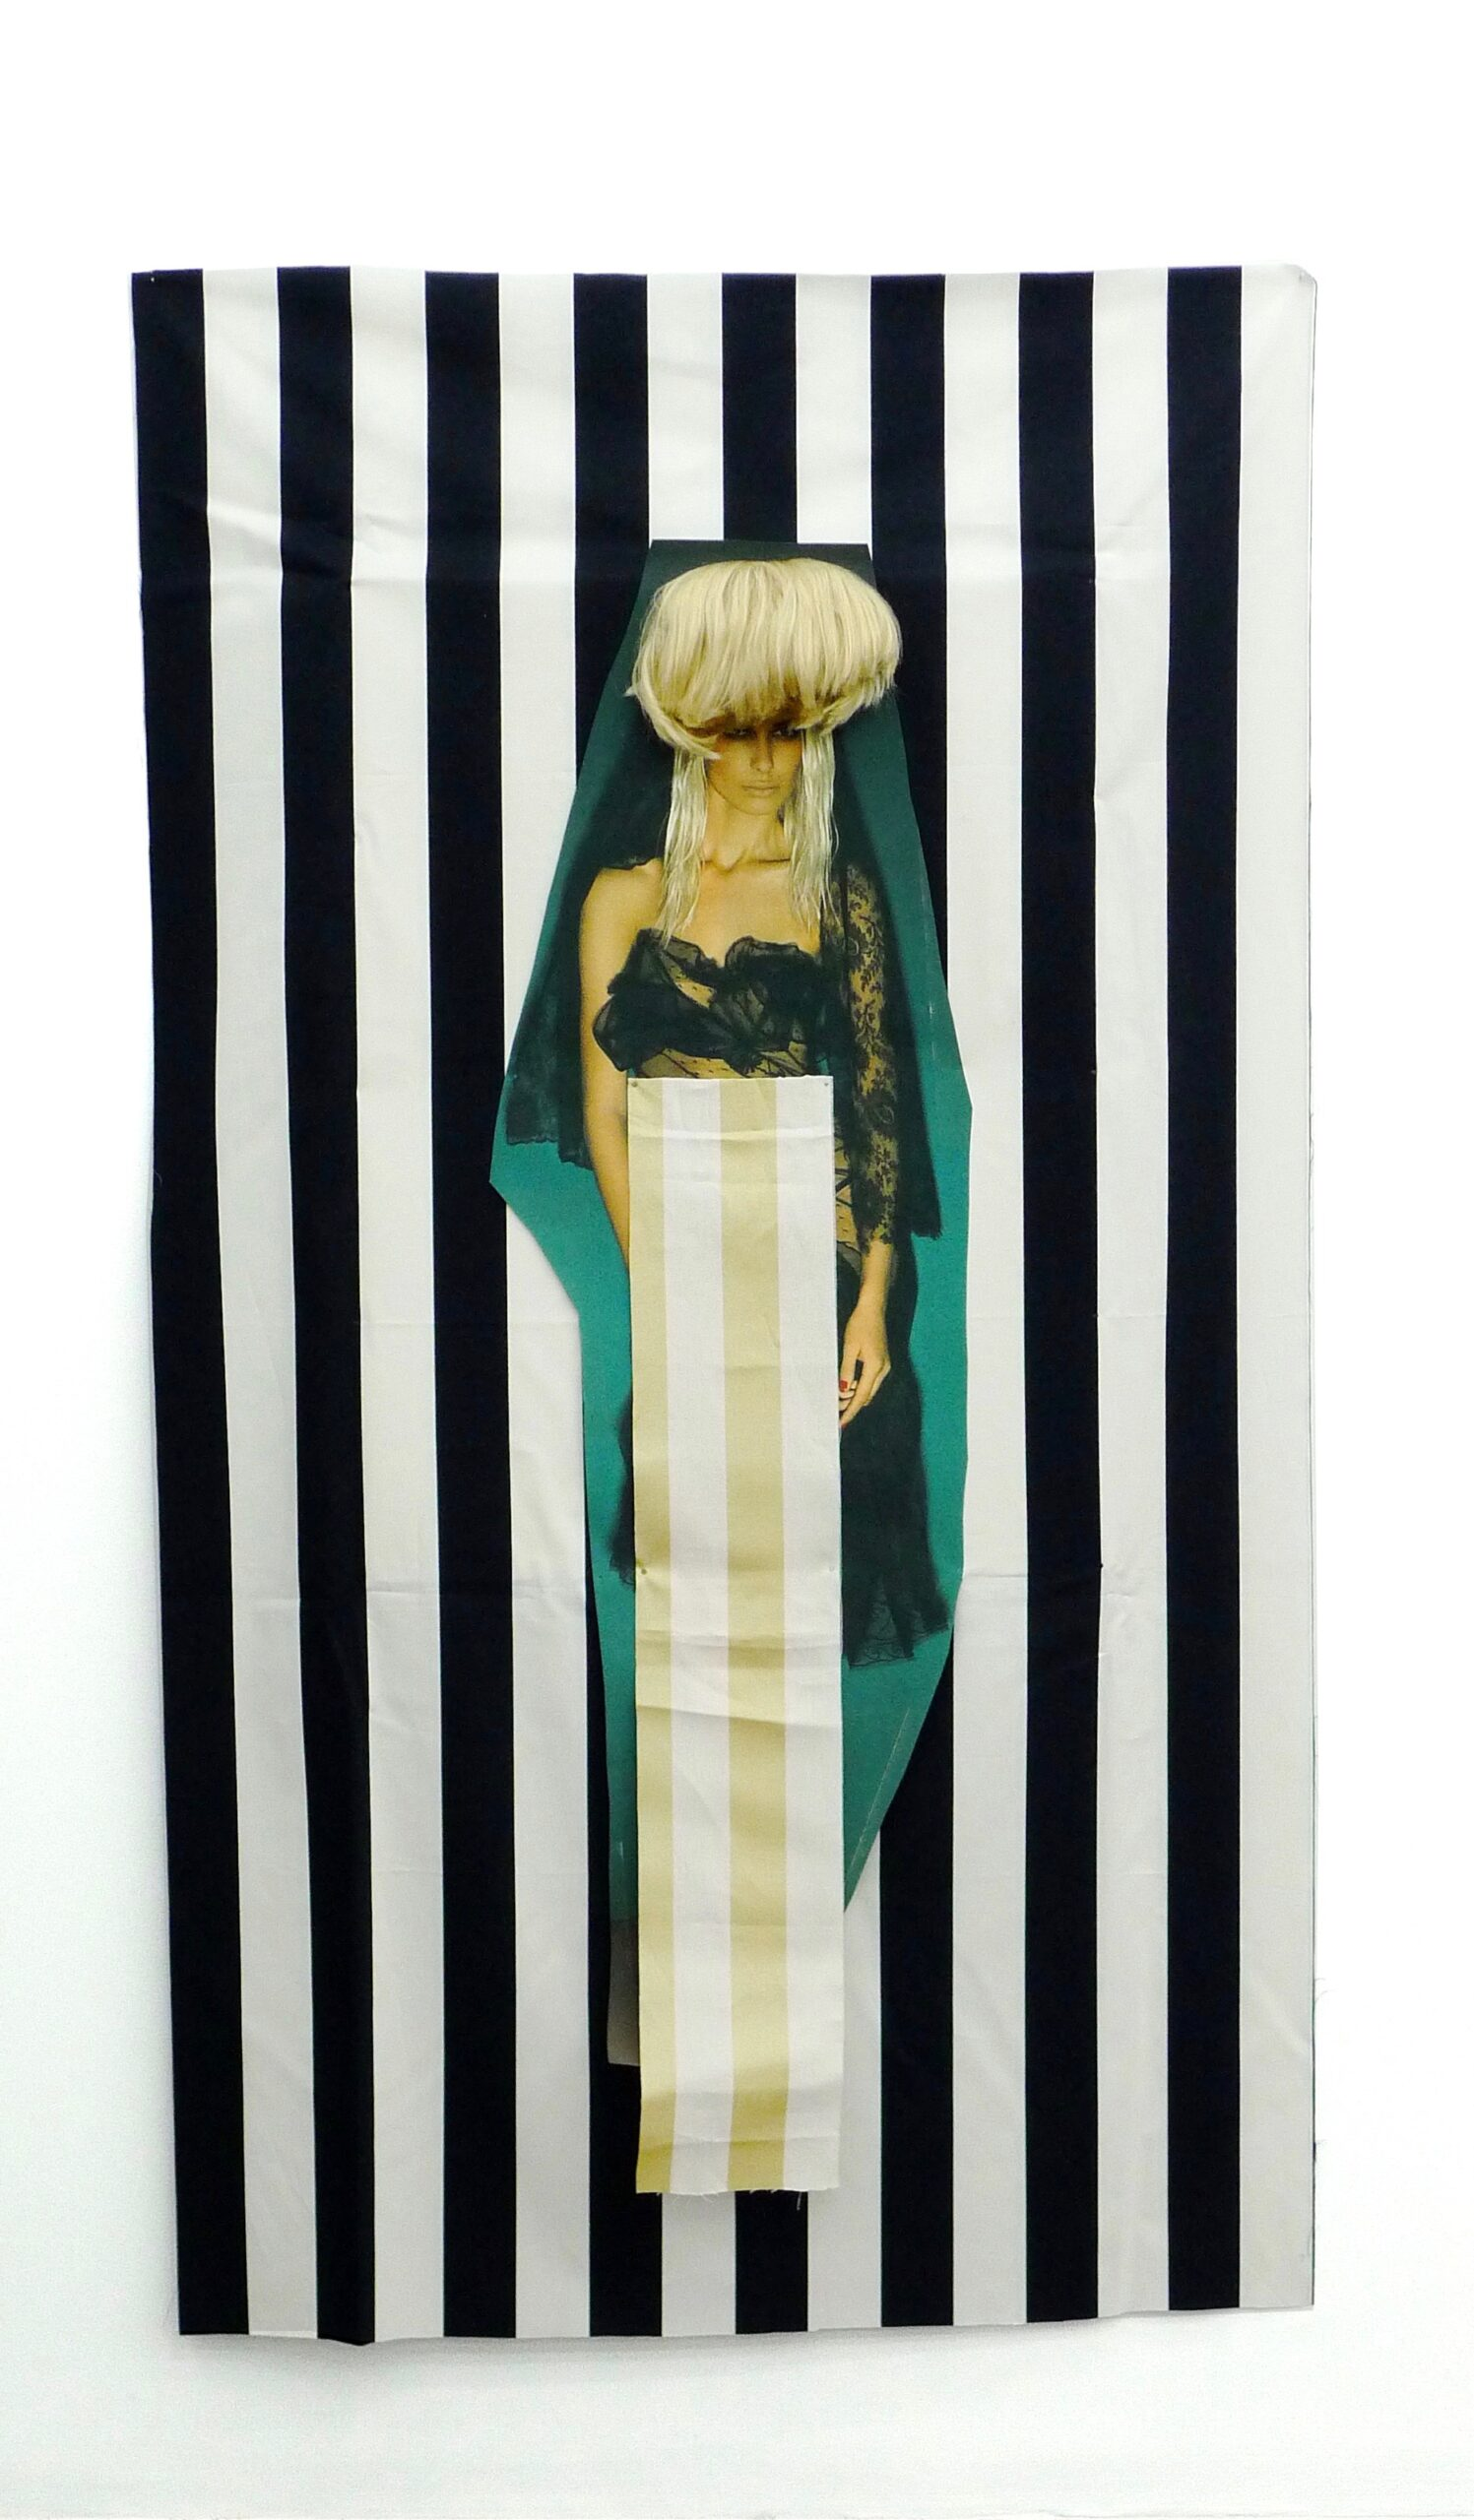 """Jacqueline Fraser 2013 """"Looking at Commes de garcons Looking at Daniel Buren at the Guggenheim NYC"""" fabric, duratran prints and wig 2170mm x 1200mm"""